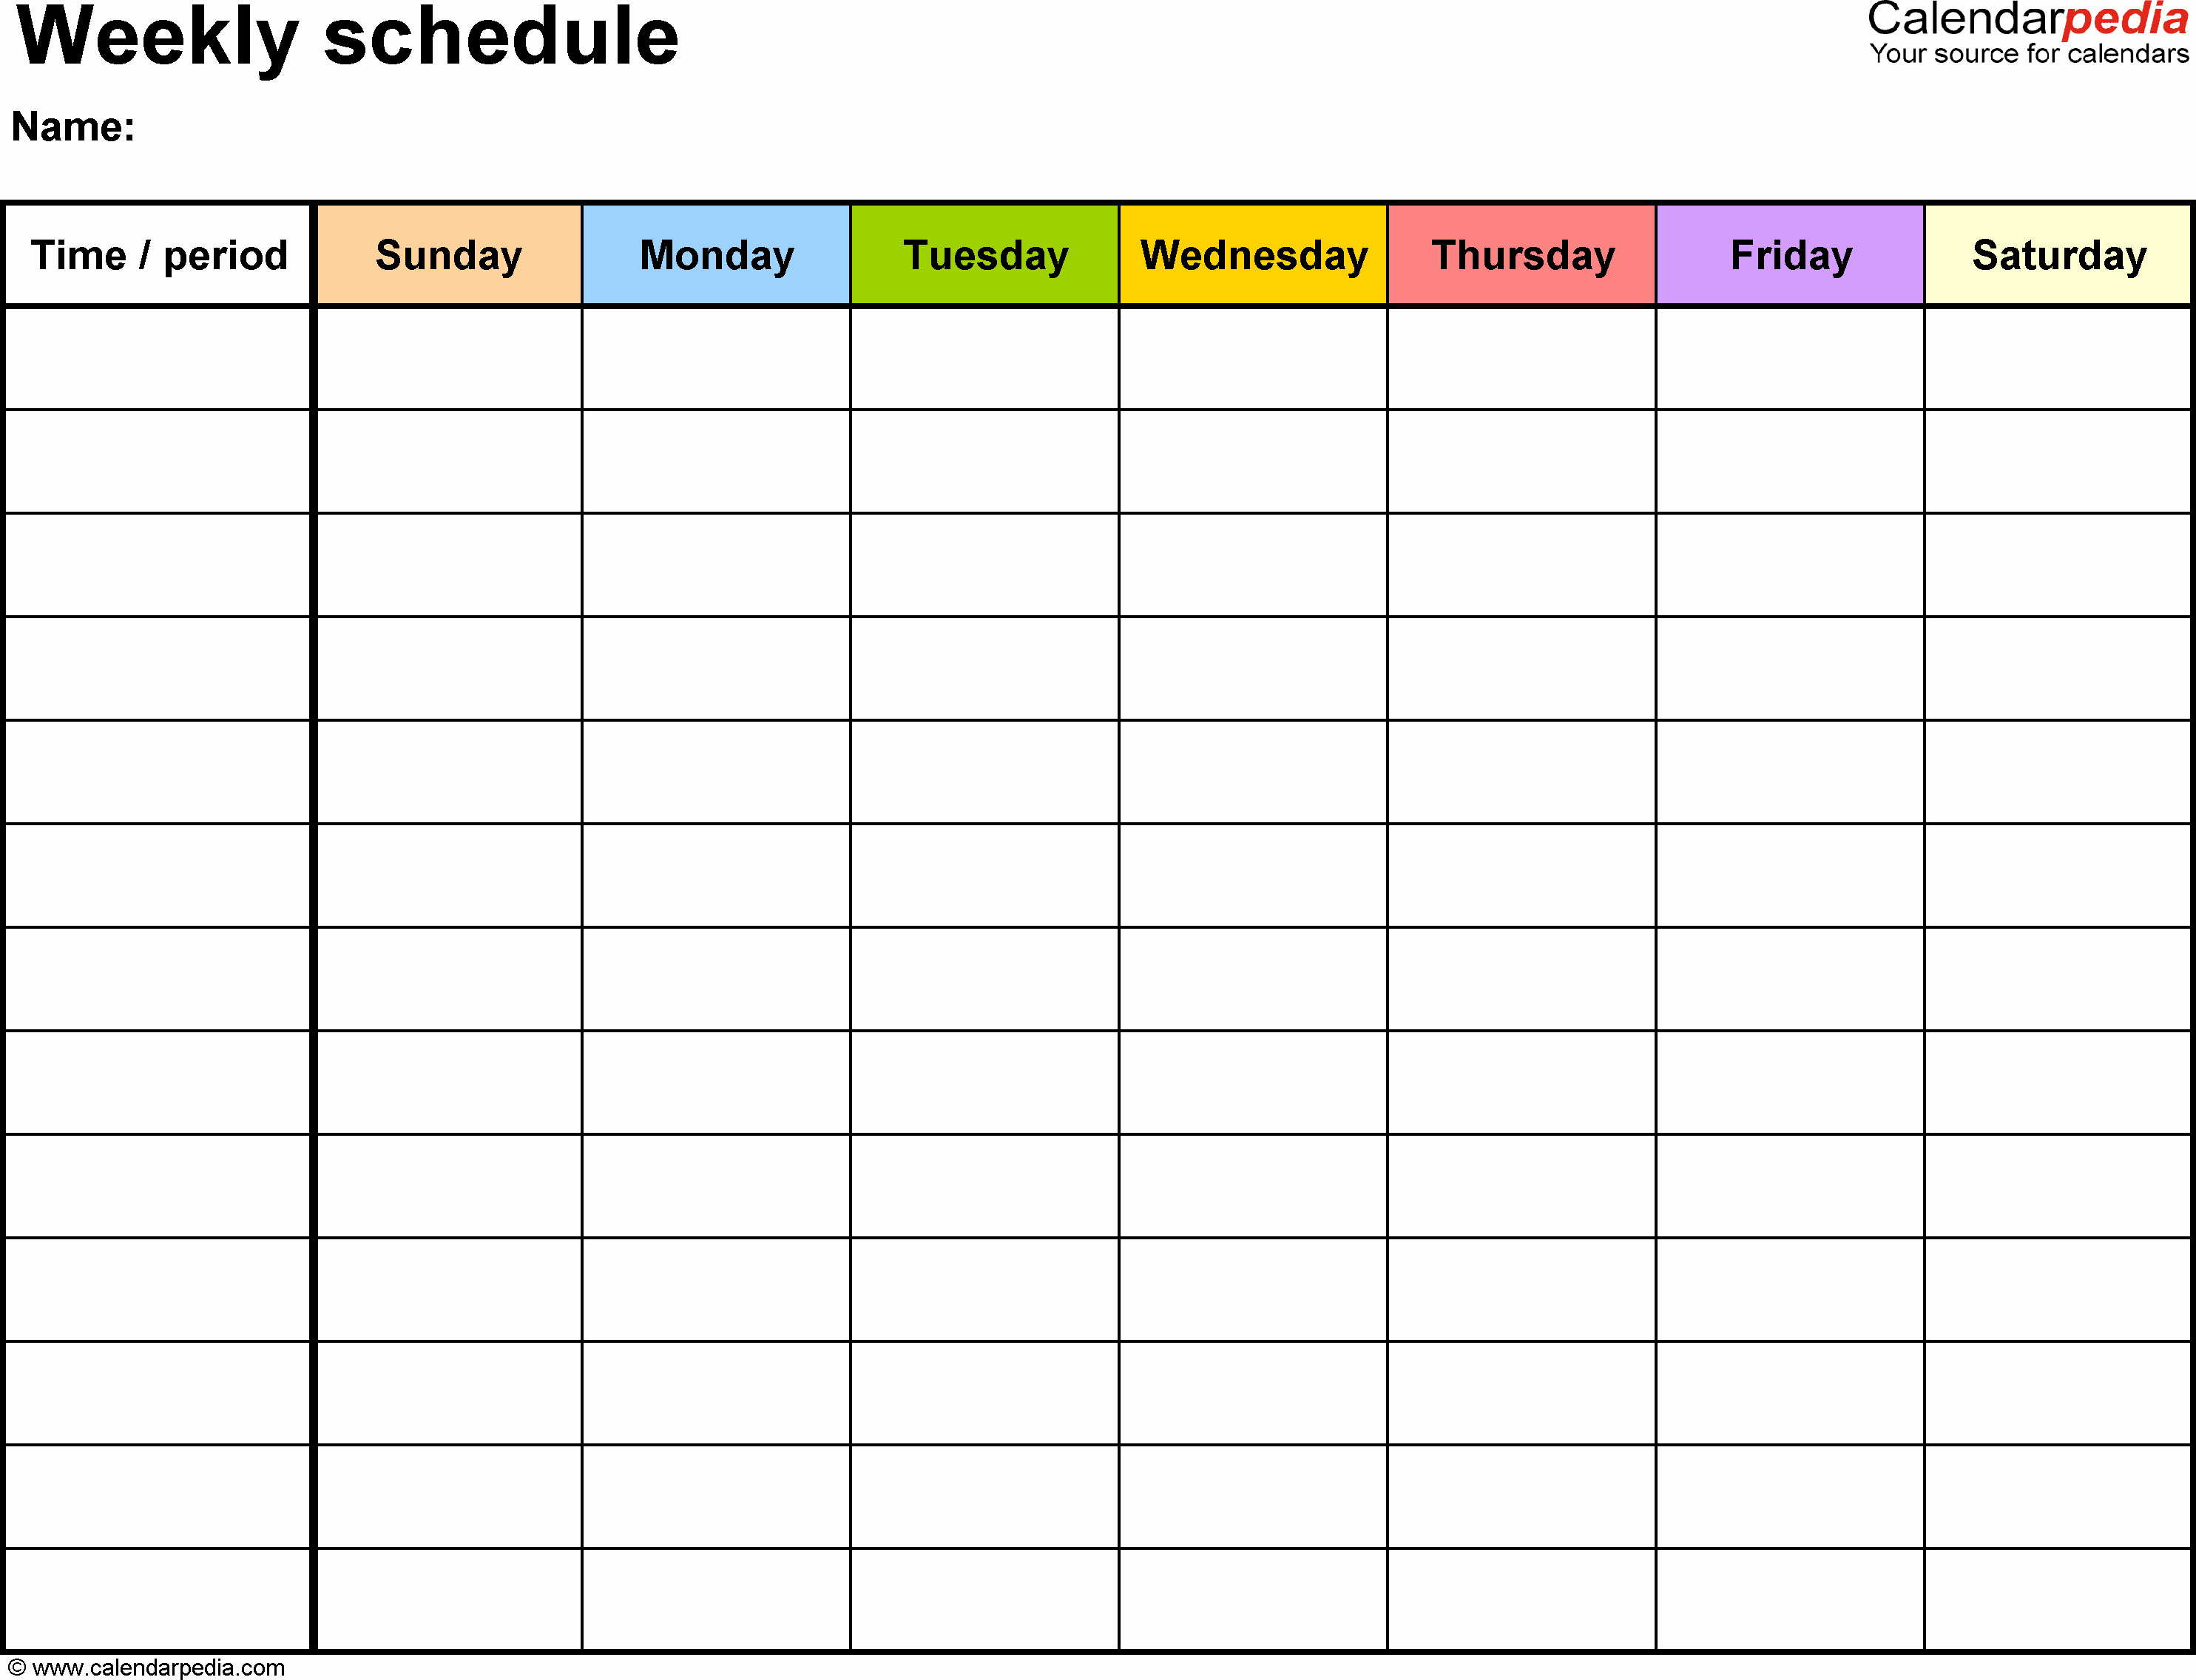 30 Day Calendar Template Word Inspirational Free Weekly Schedule Templates for Excel 18 Templates